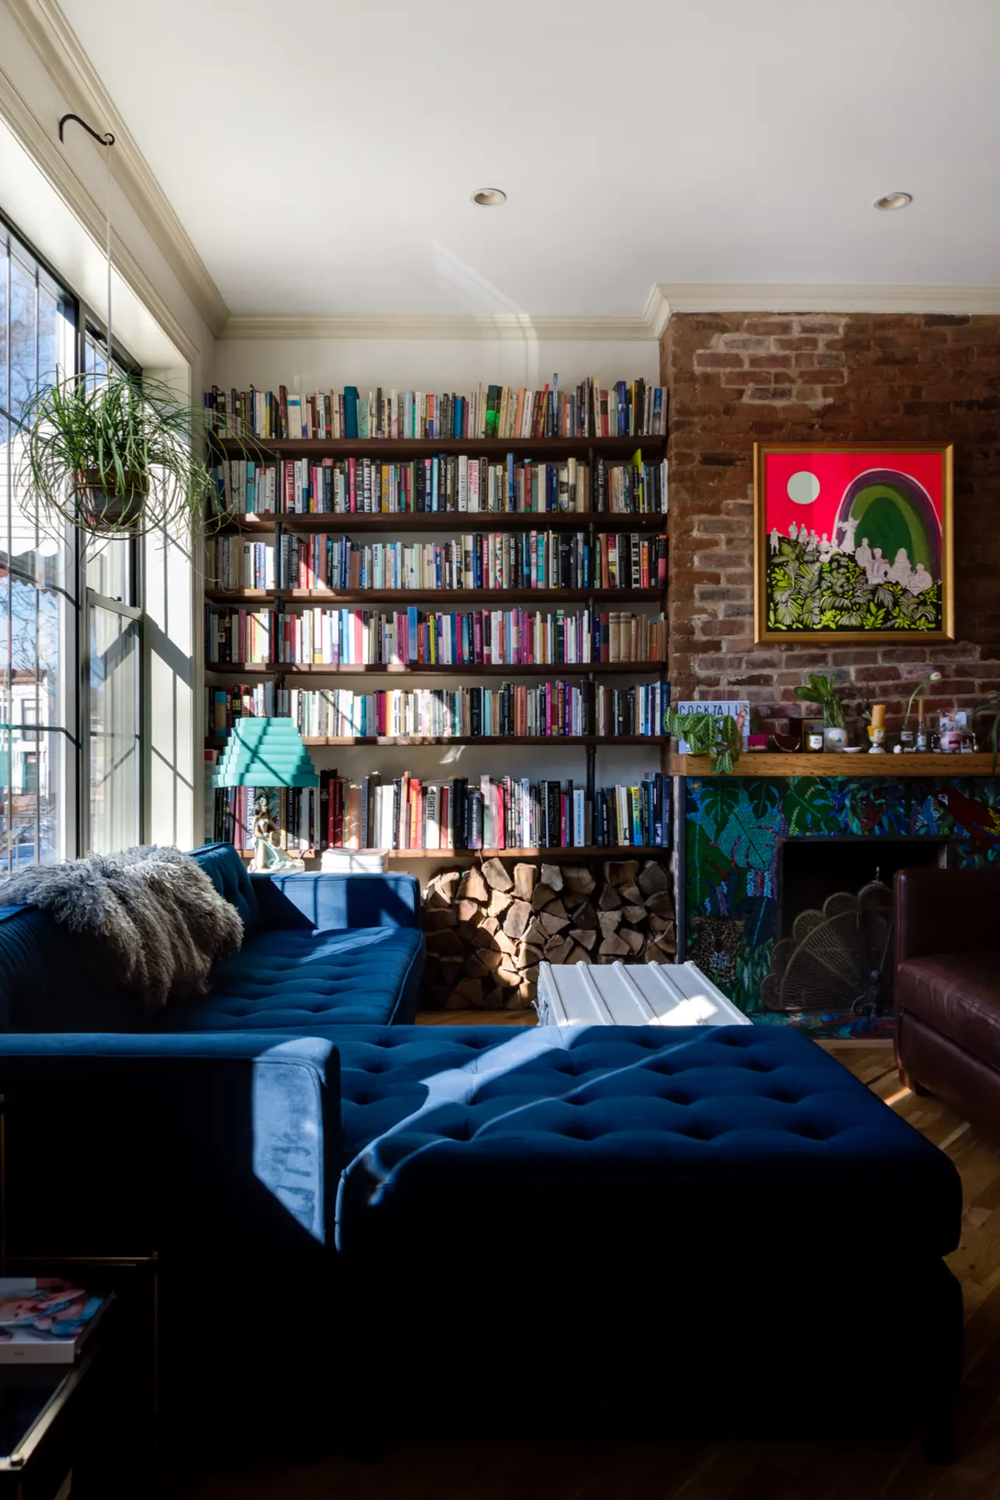 The Nordroom - A Fun Brooklyn Family Home With Colorful Wallpaper